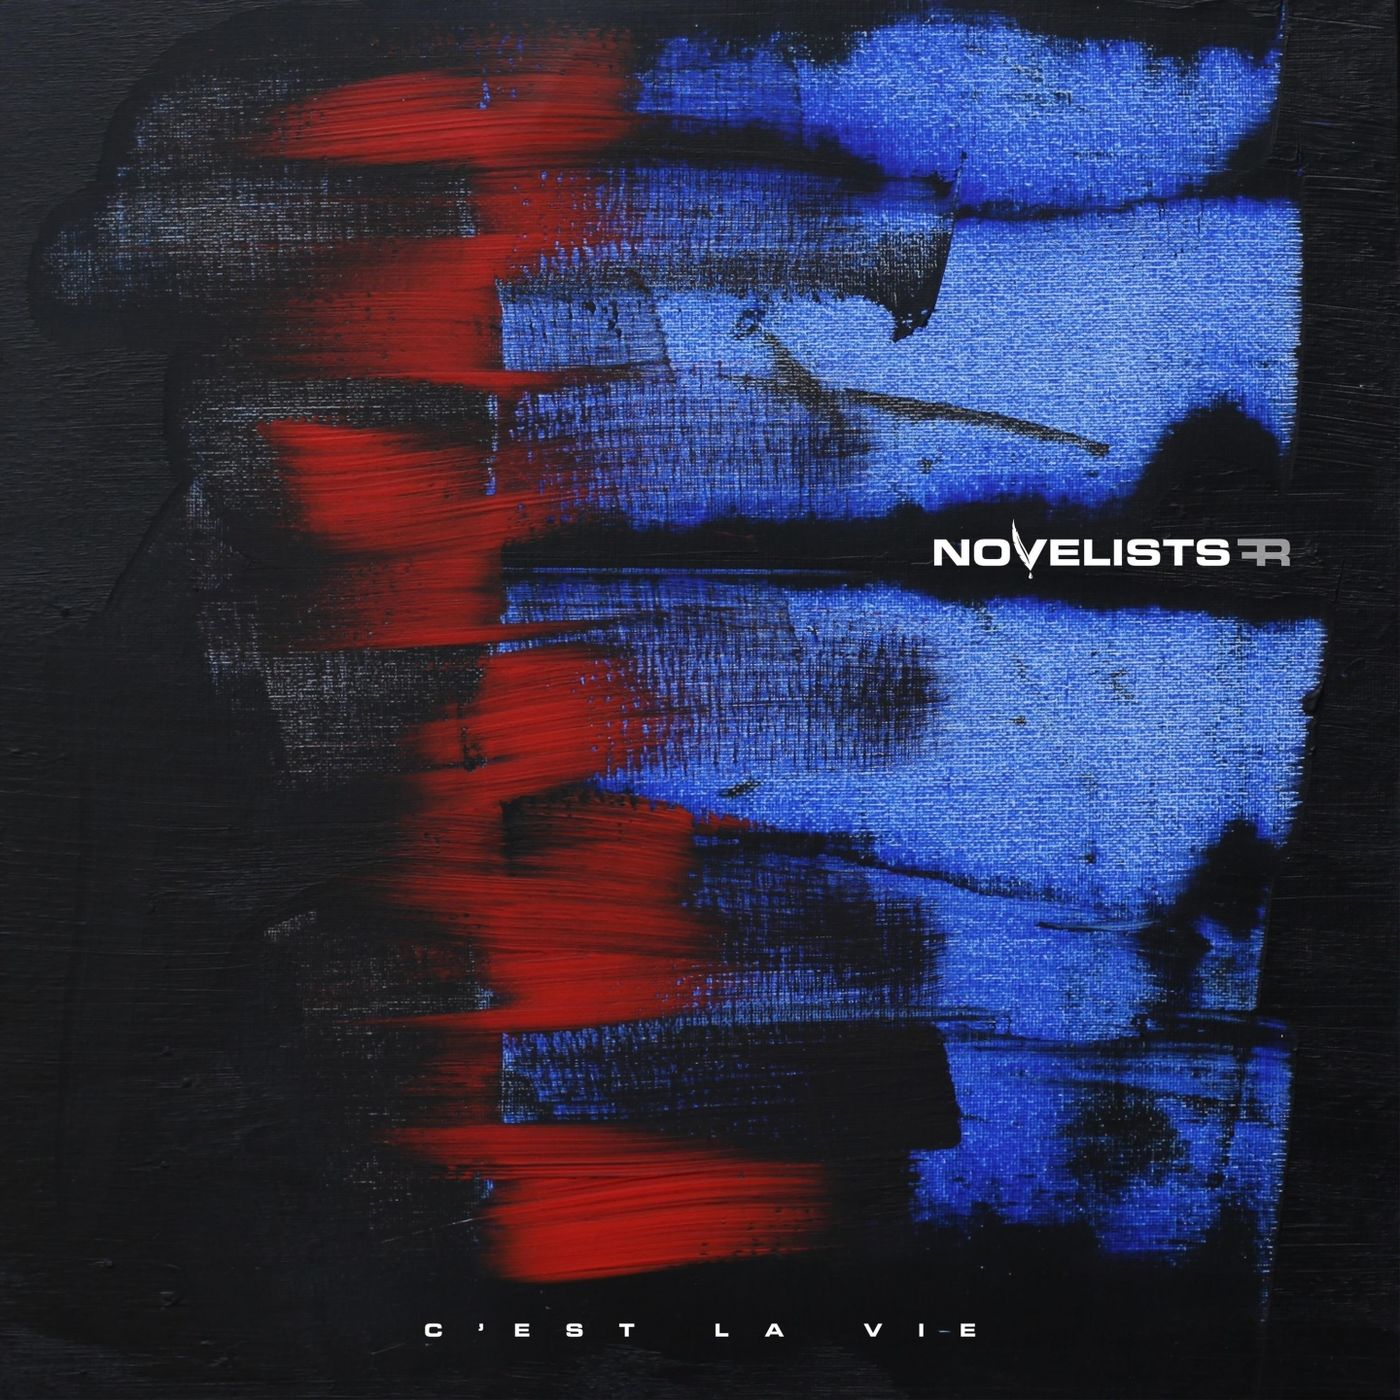 Novelists FR - C'est la vie (Remixed & Remastered) (2020)